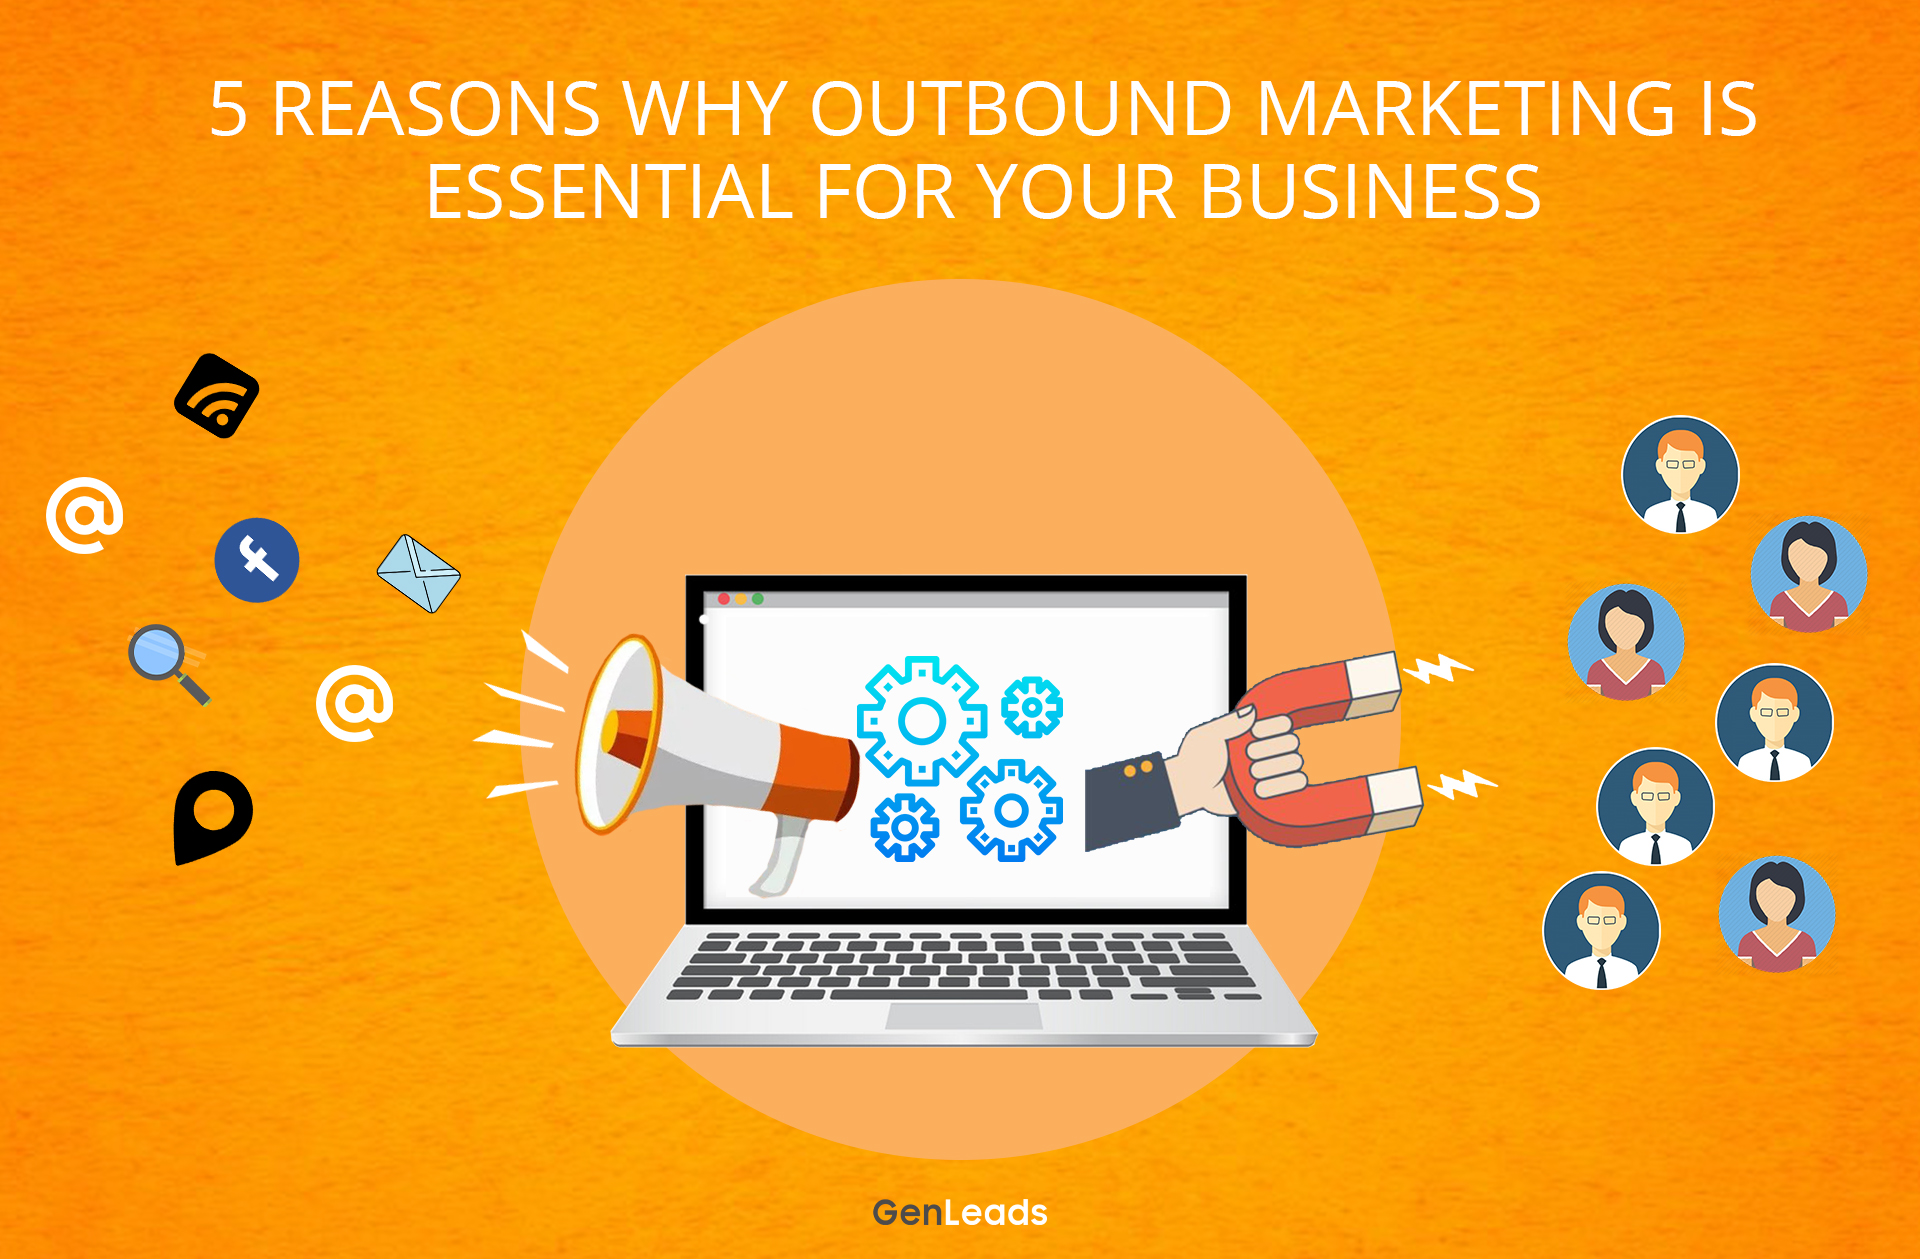 Outbound Marketing Is Essential for Your Business